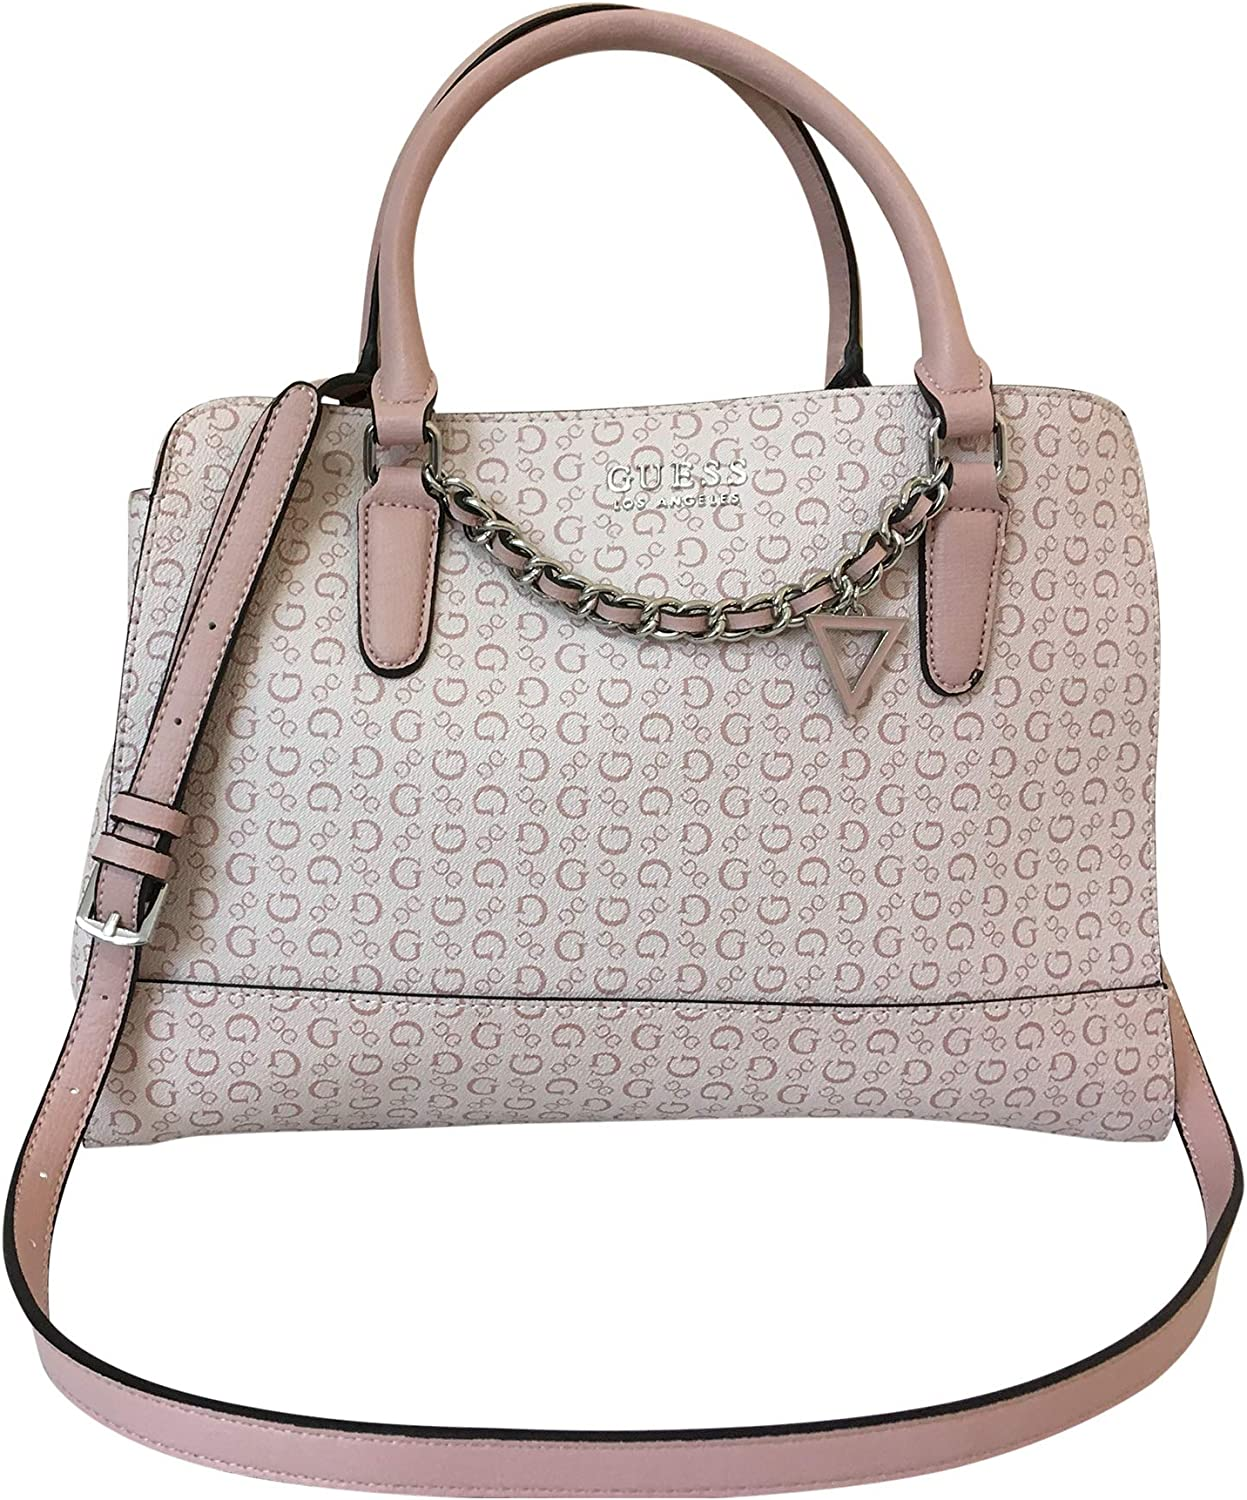 13 Best Guess images | Purses, Guess handbags, Guess bags